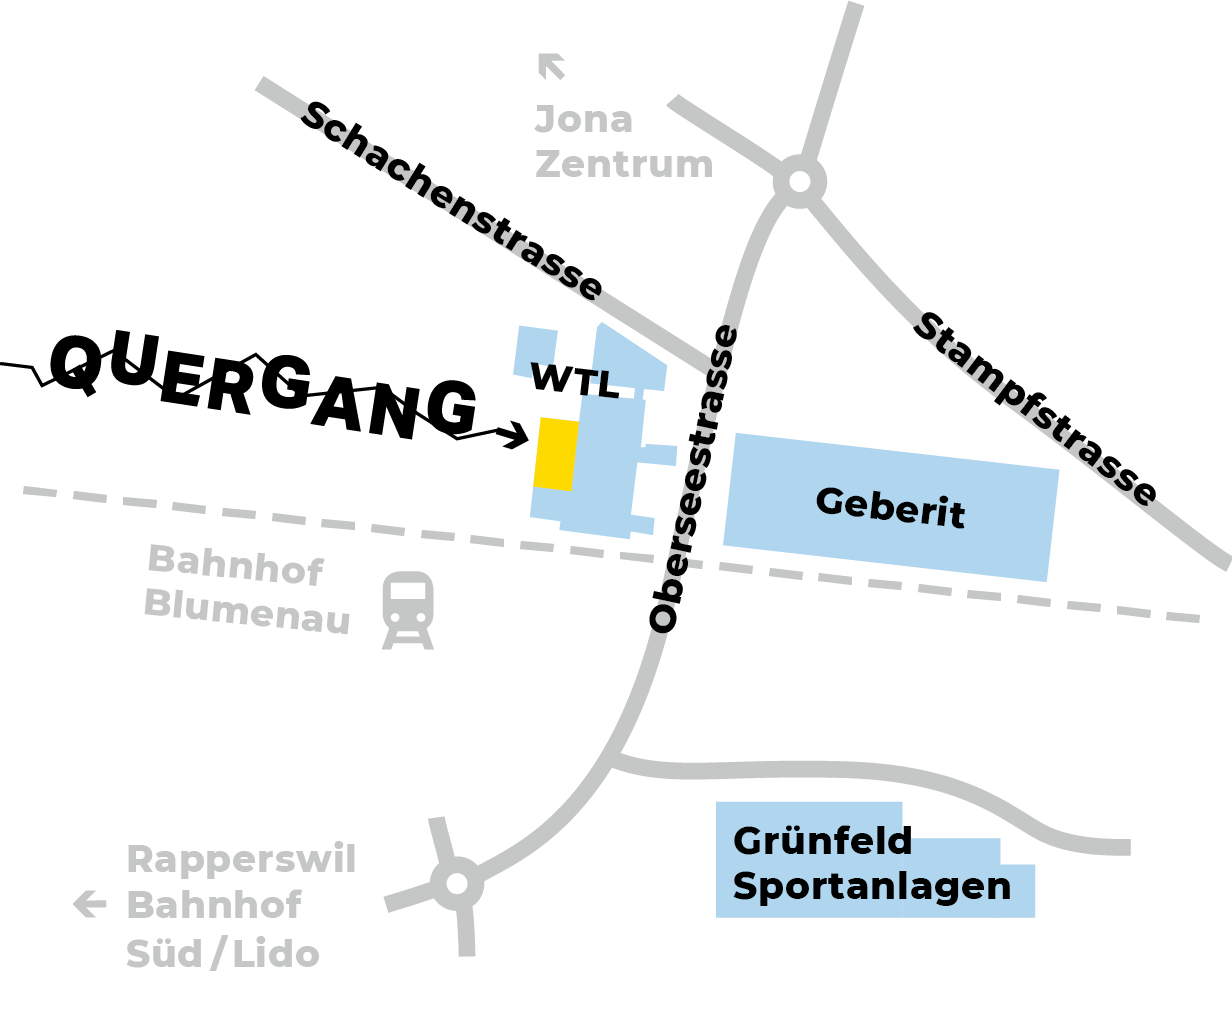 Standort Quergang 2.0: Schachenstrasse 82 in 8645 Rapperswil-Jona.